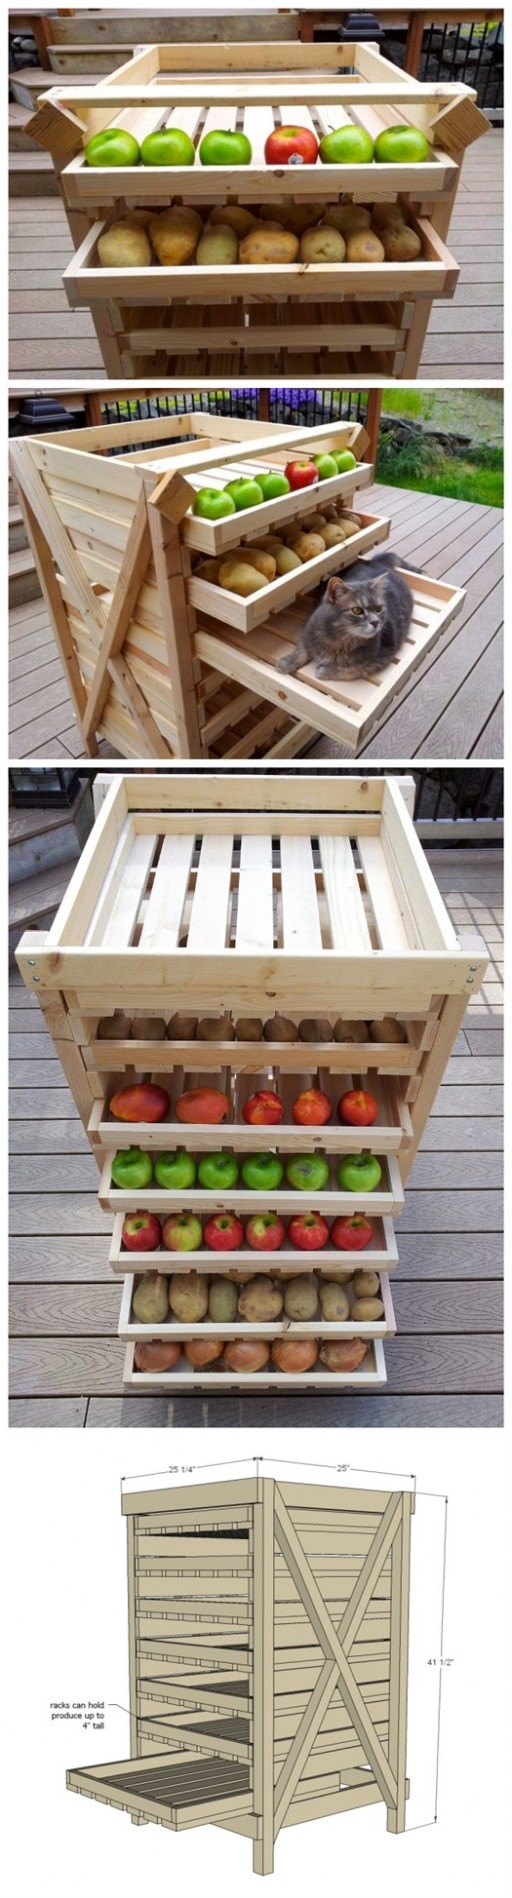 DIY Food Drying Storage Shelf 2